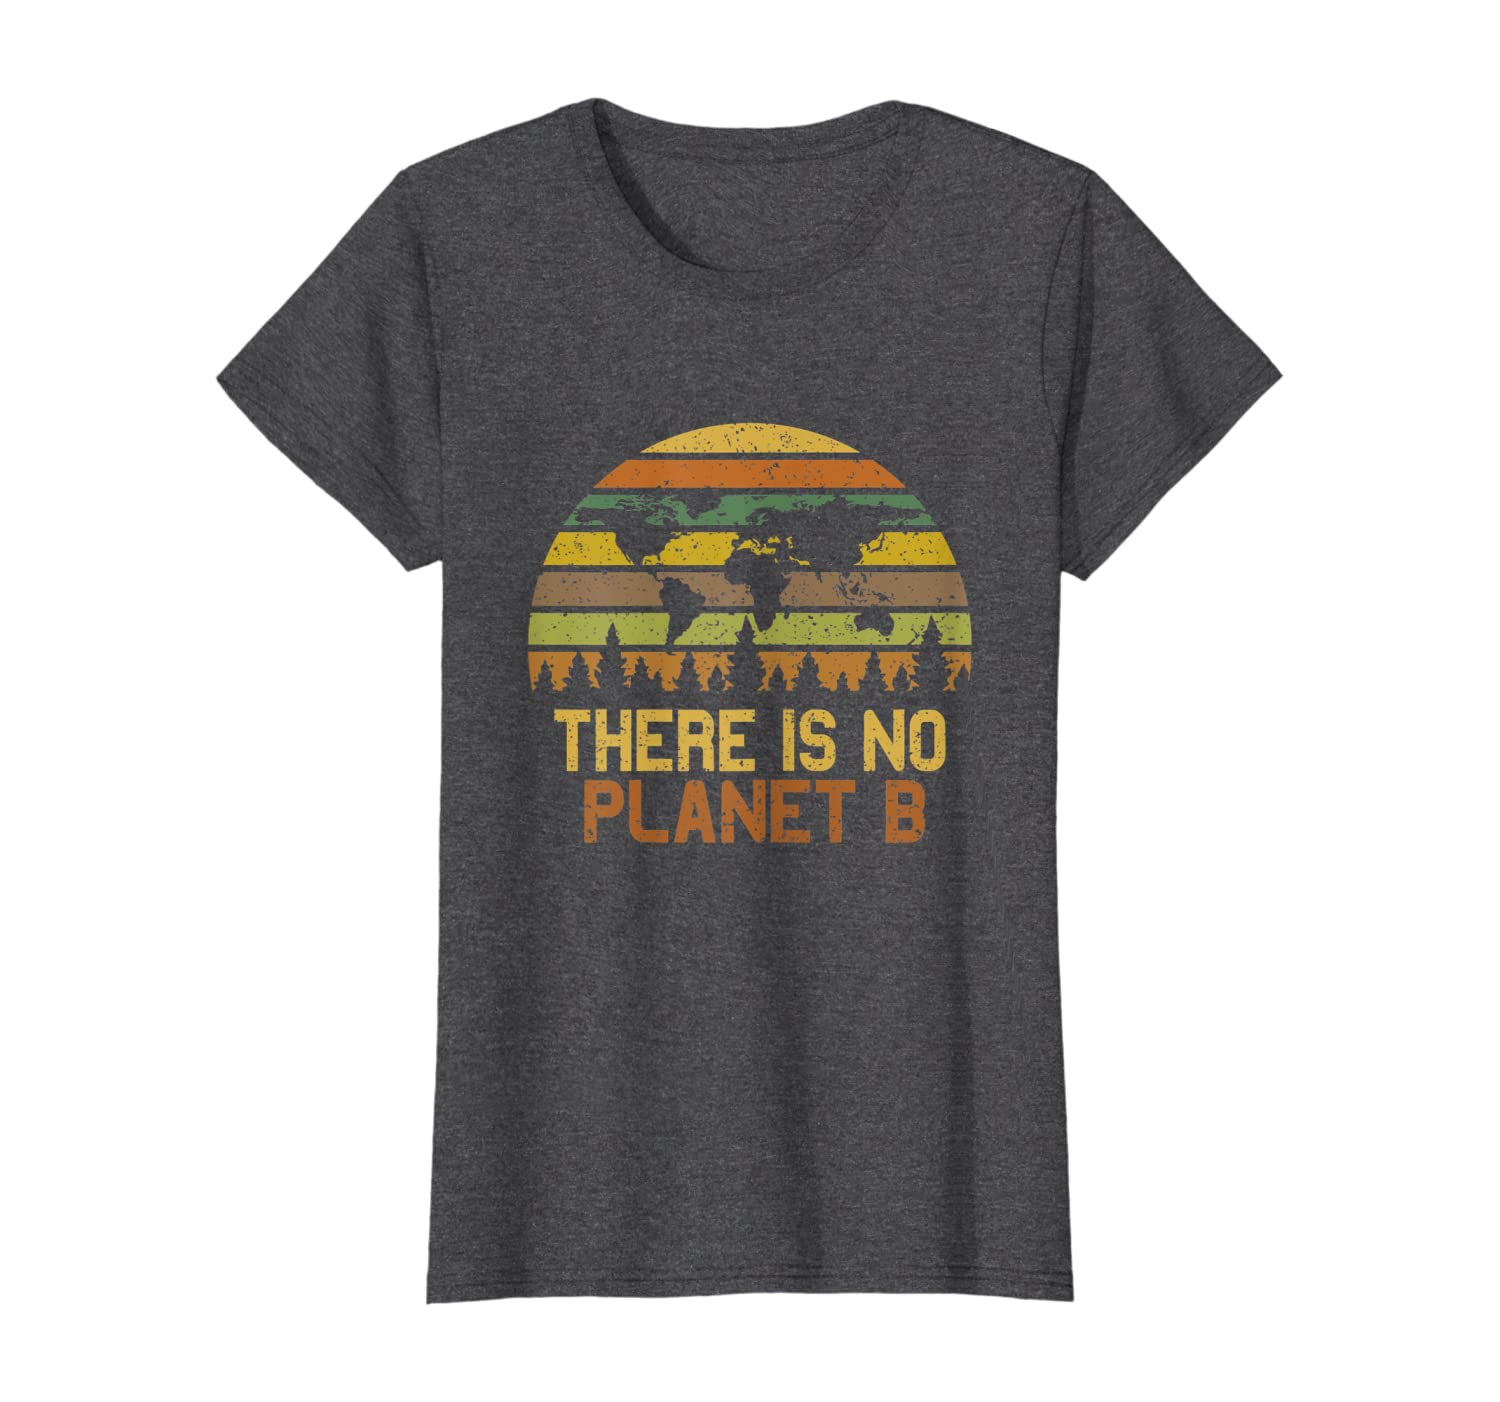 There Is No Planet B T-Shirt Earth Day Vintage T-Shirt